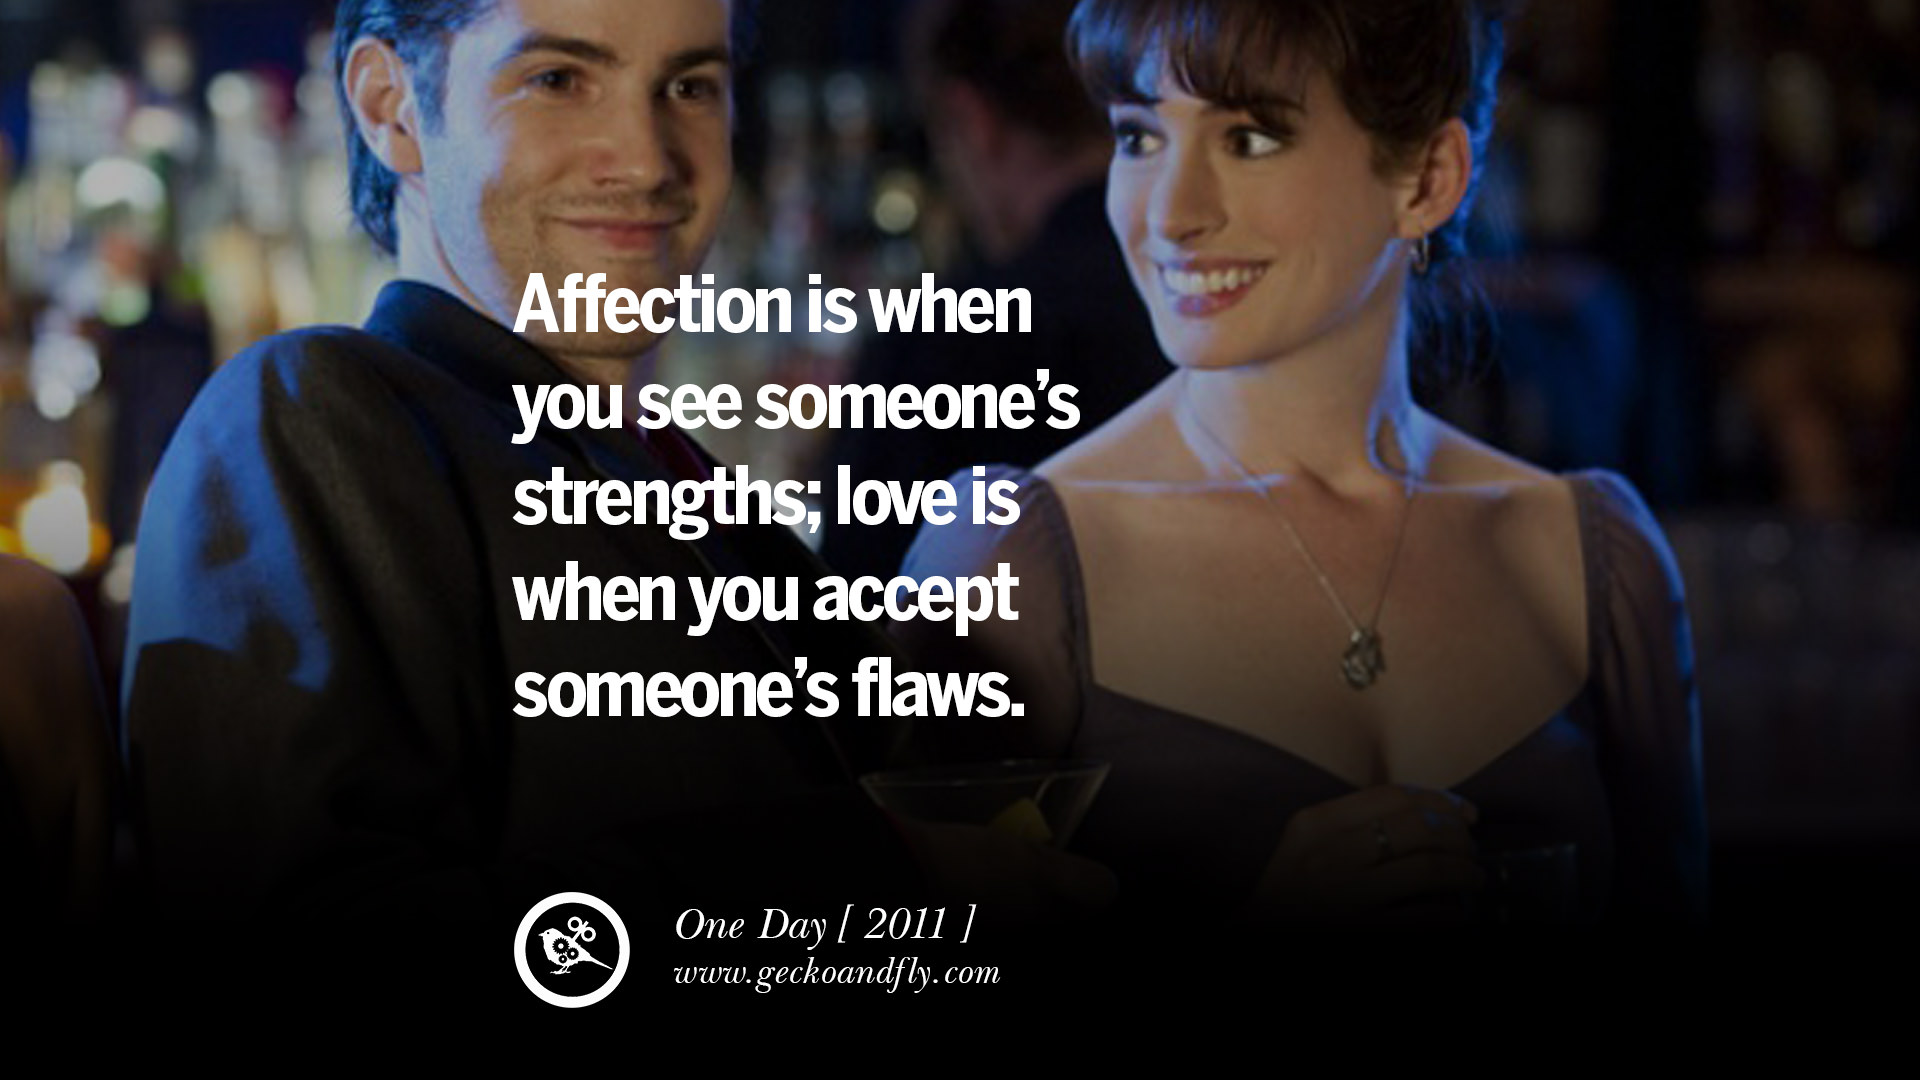 Funny Love Quotes From Movies 20 Famous Movie Quotes On Love Life Relationship Friends And